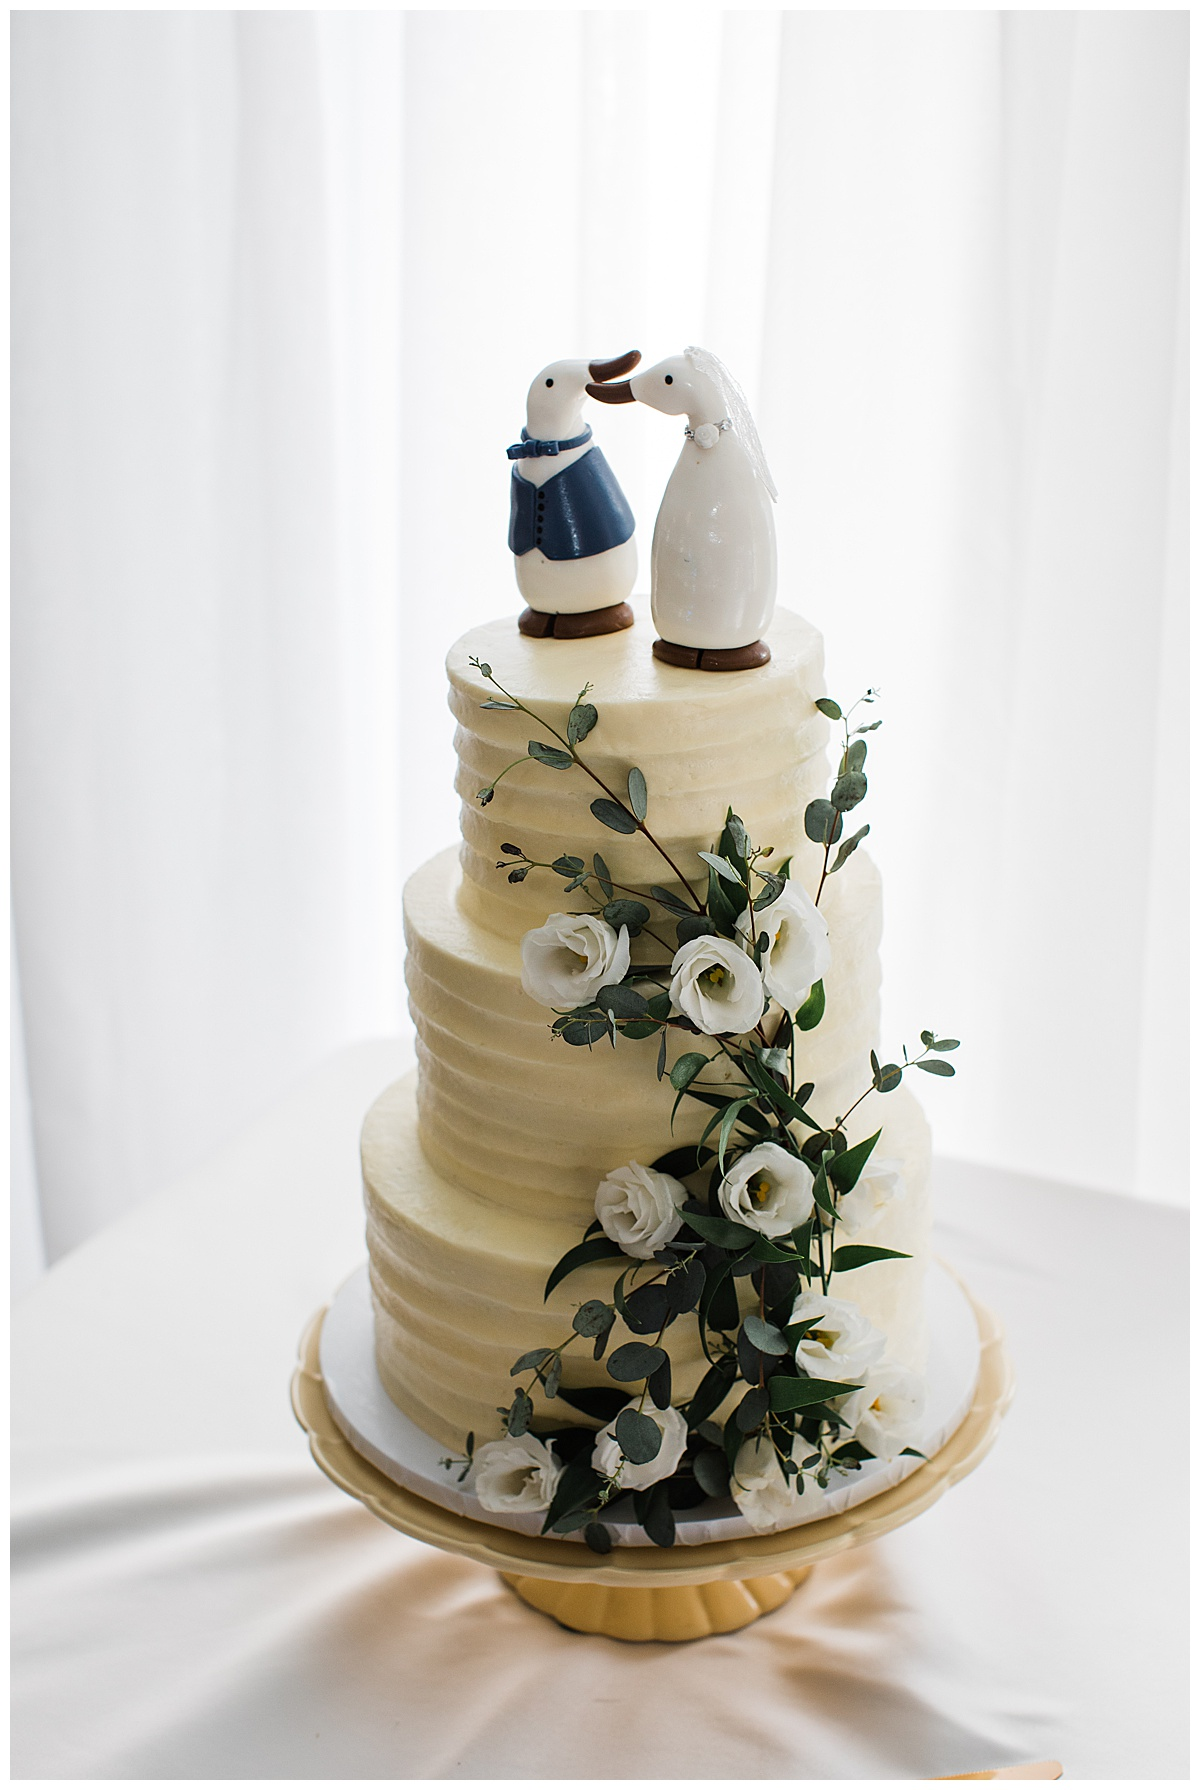 Wedding cake with penguin cake toppers| Ontario wedding| Toronto wedding photographer| 3photography